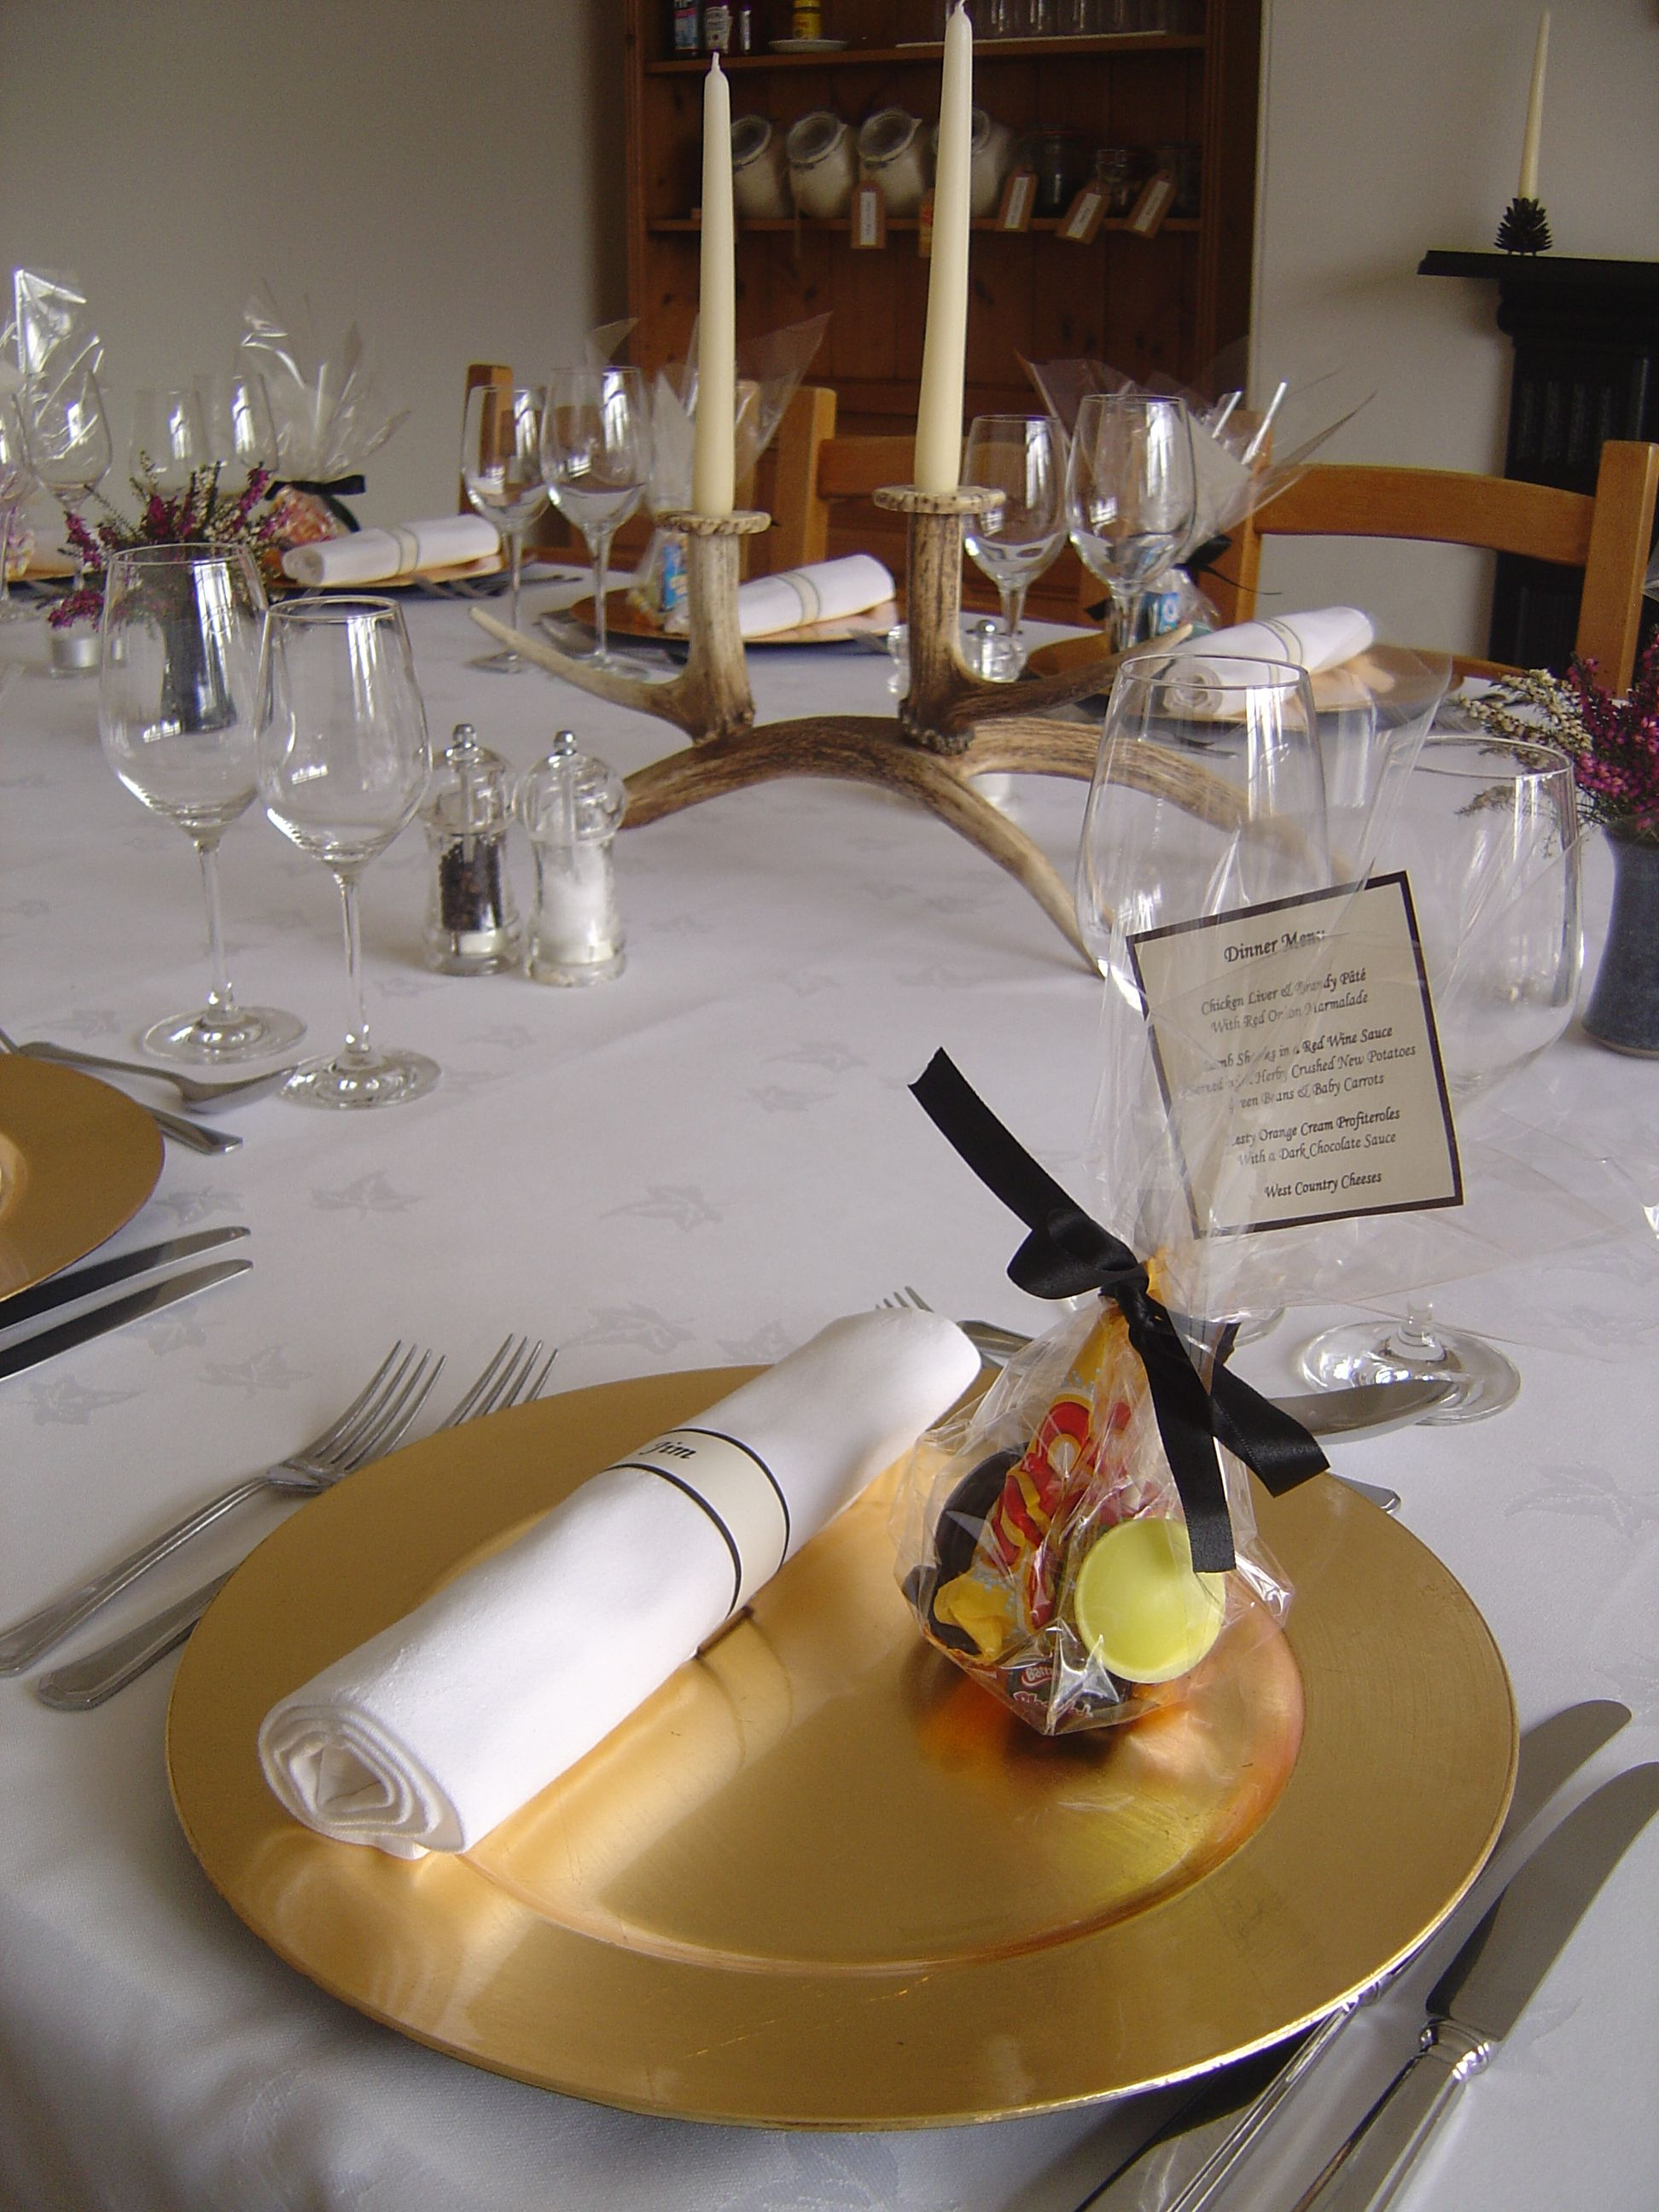 Exclusive use hotel hire 40th birthday house party Table setting